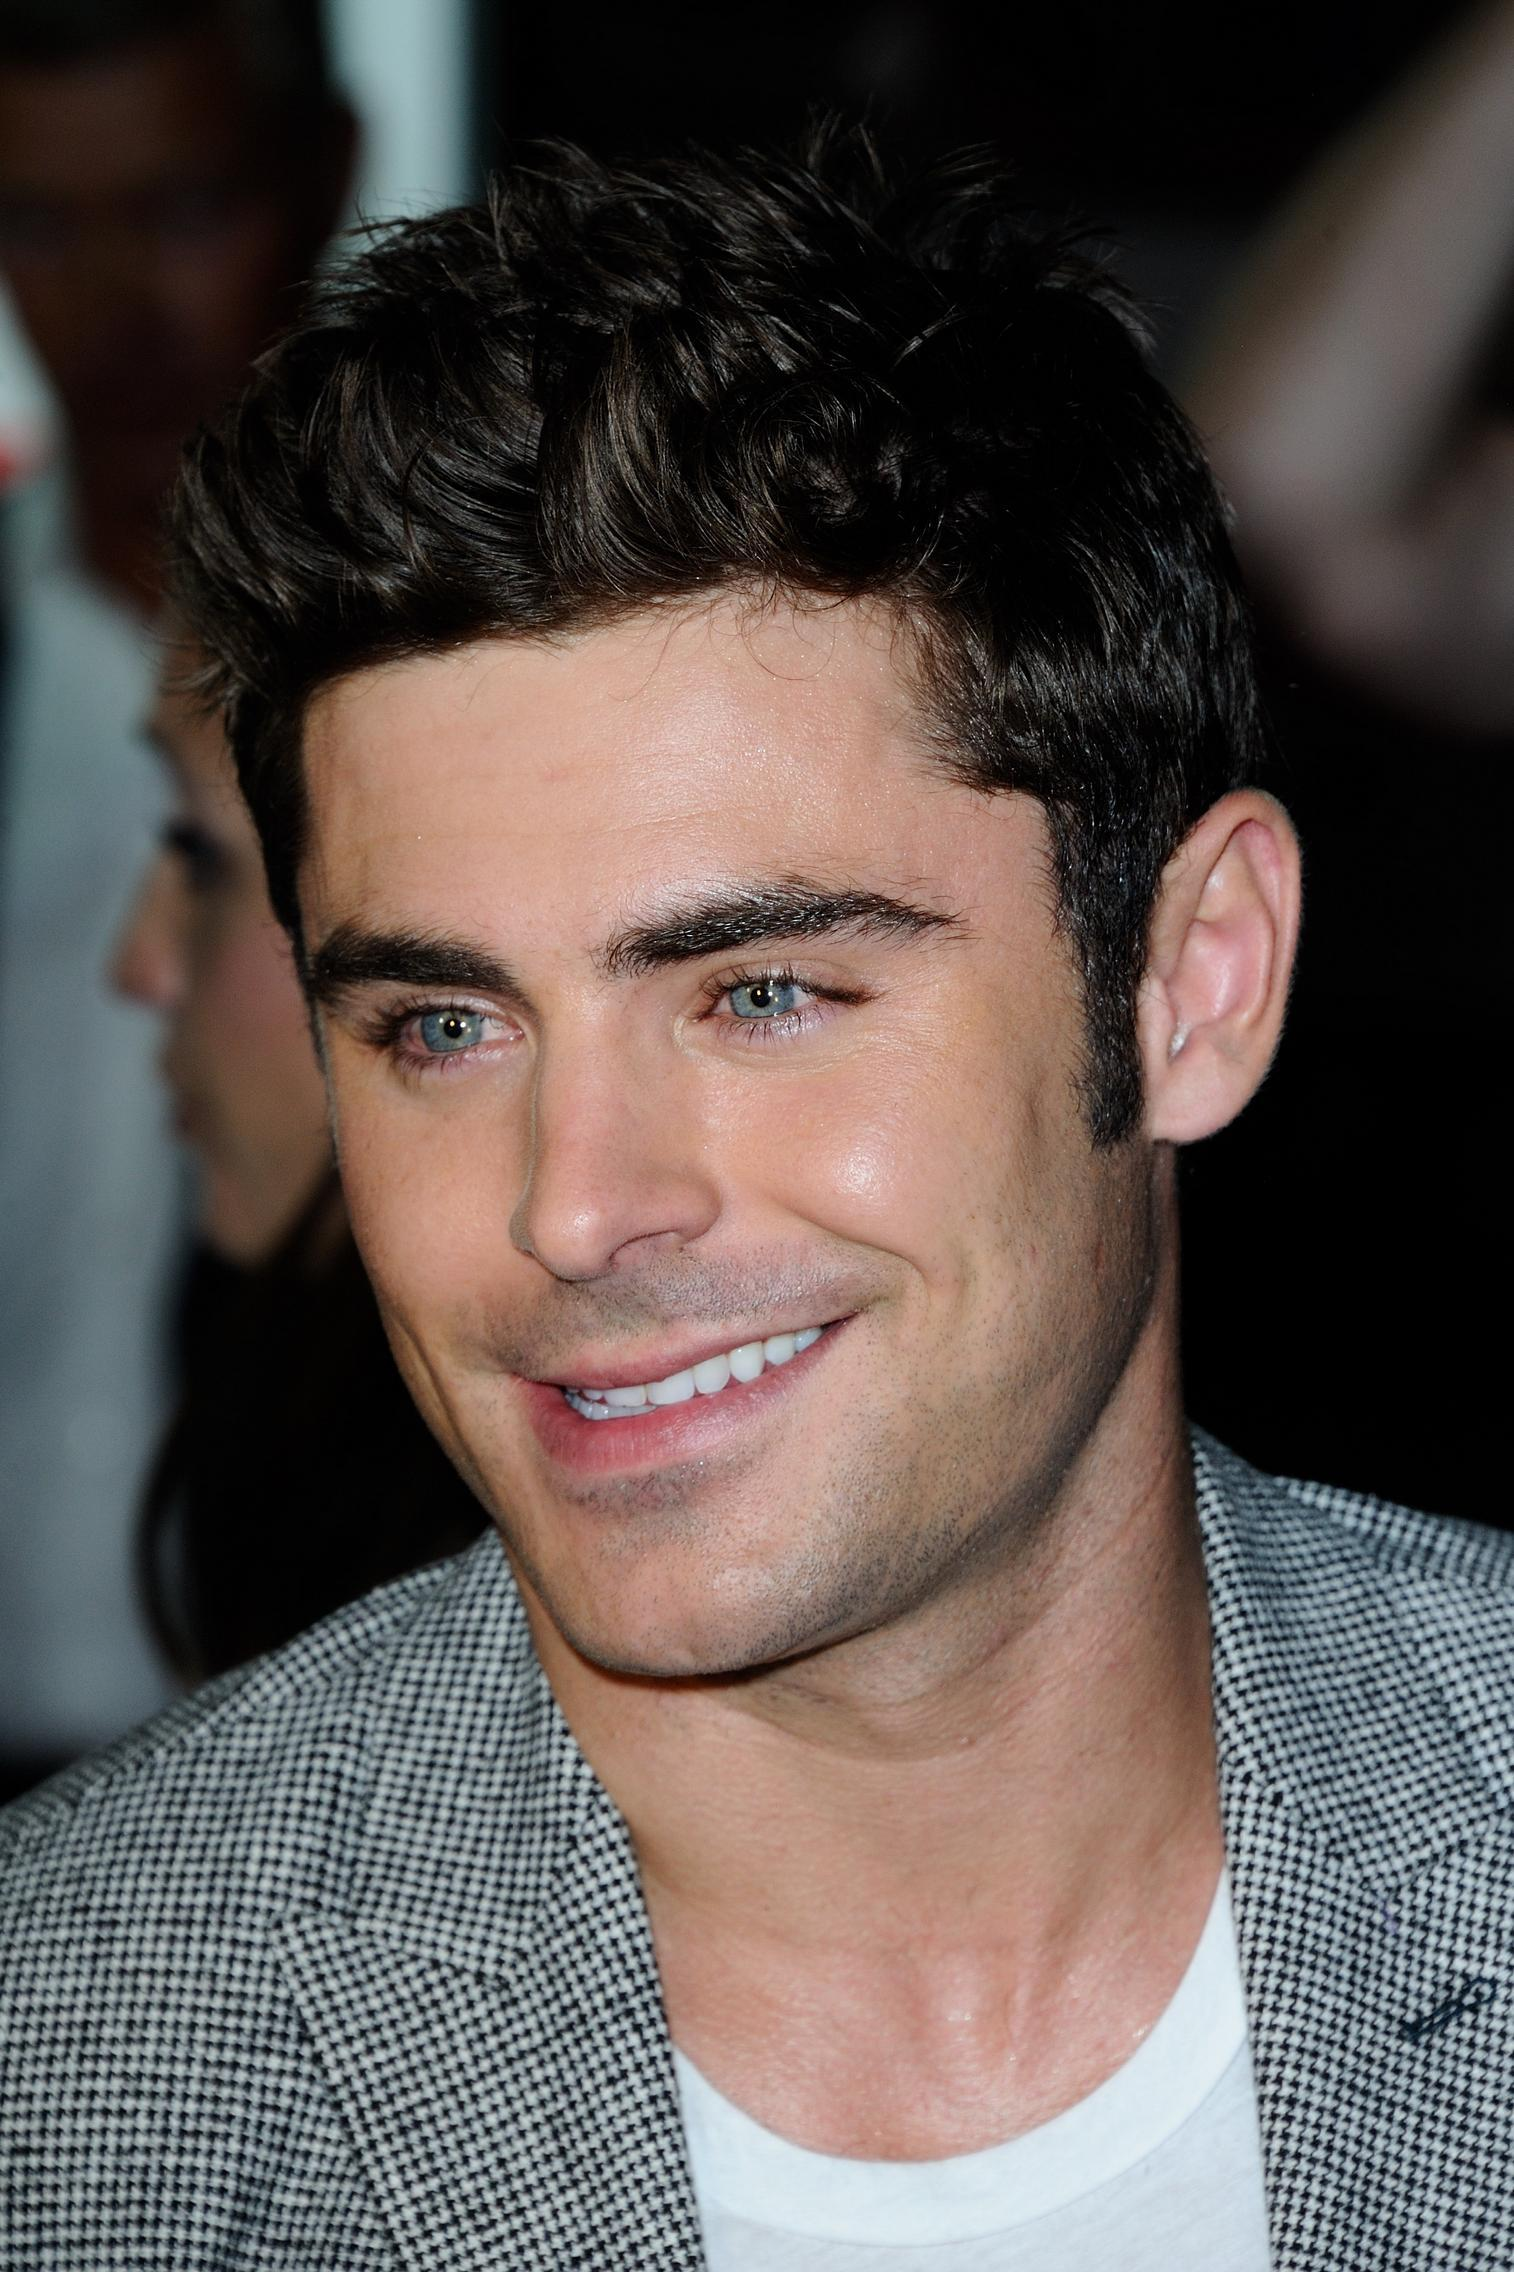 Zac Efron - Zac Efron Photo (39192692) - Fanpop Zac Efron